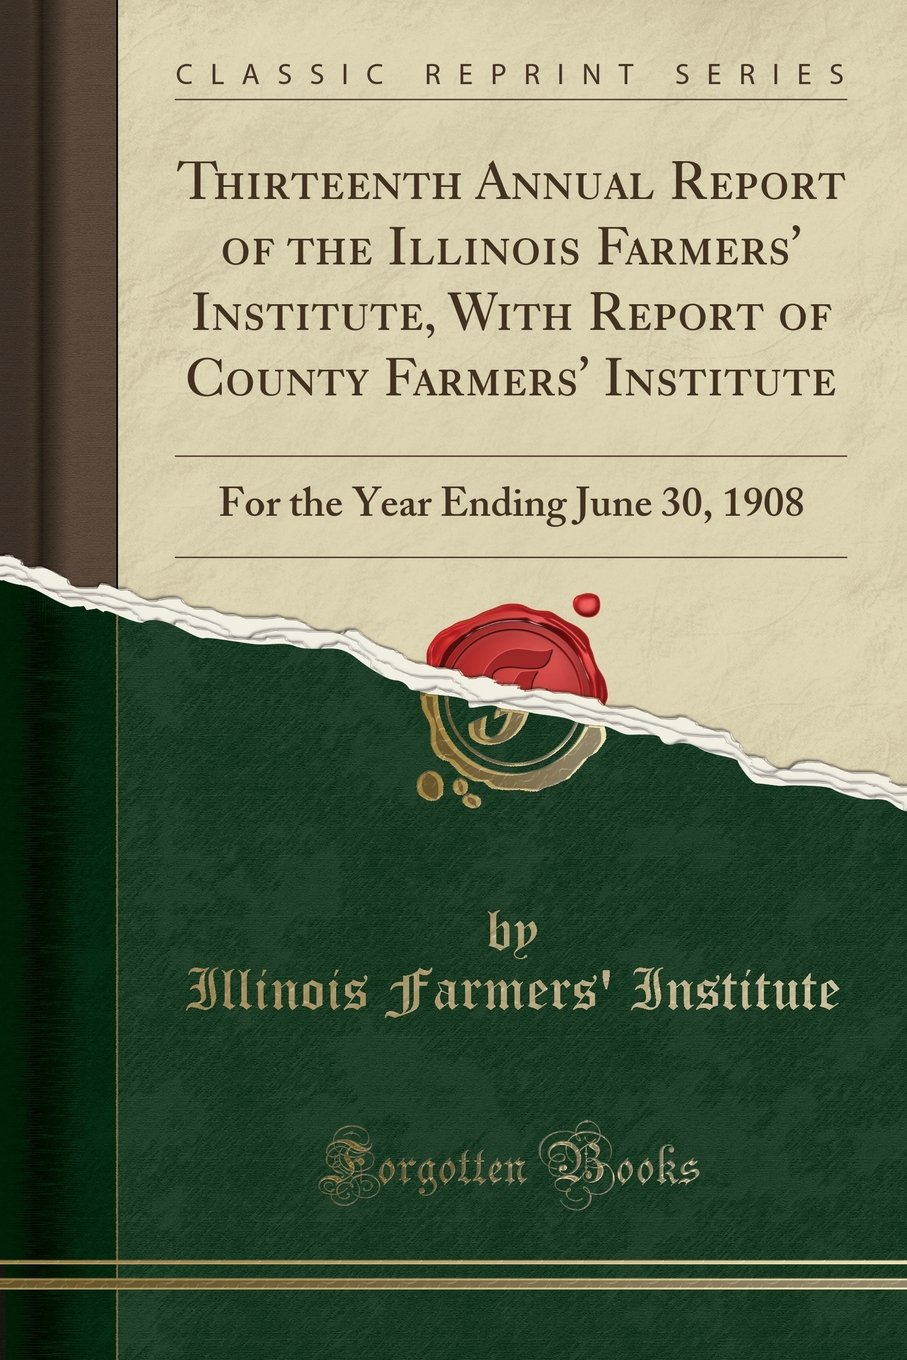 Thirteenth Annual Report of the Illinois Farmers' Institute, With Report of County Farmers' Institute: For the Year Ending June 30, 1908 (Classic Reprint) PDF